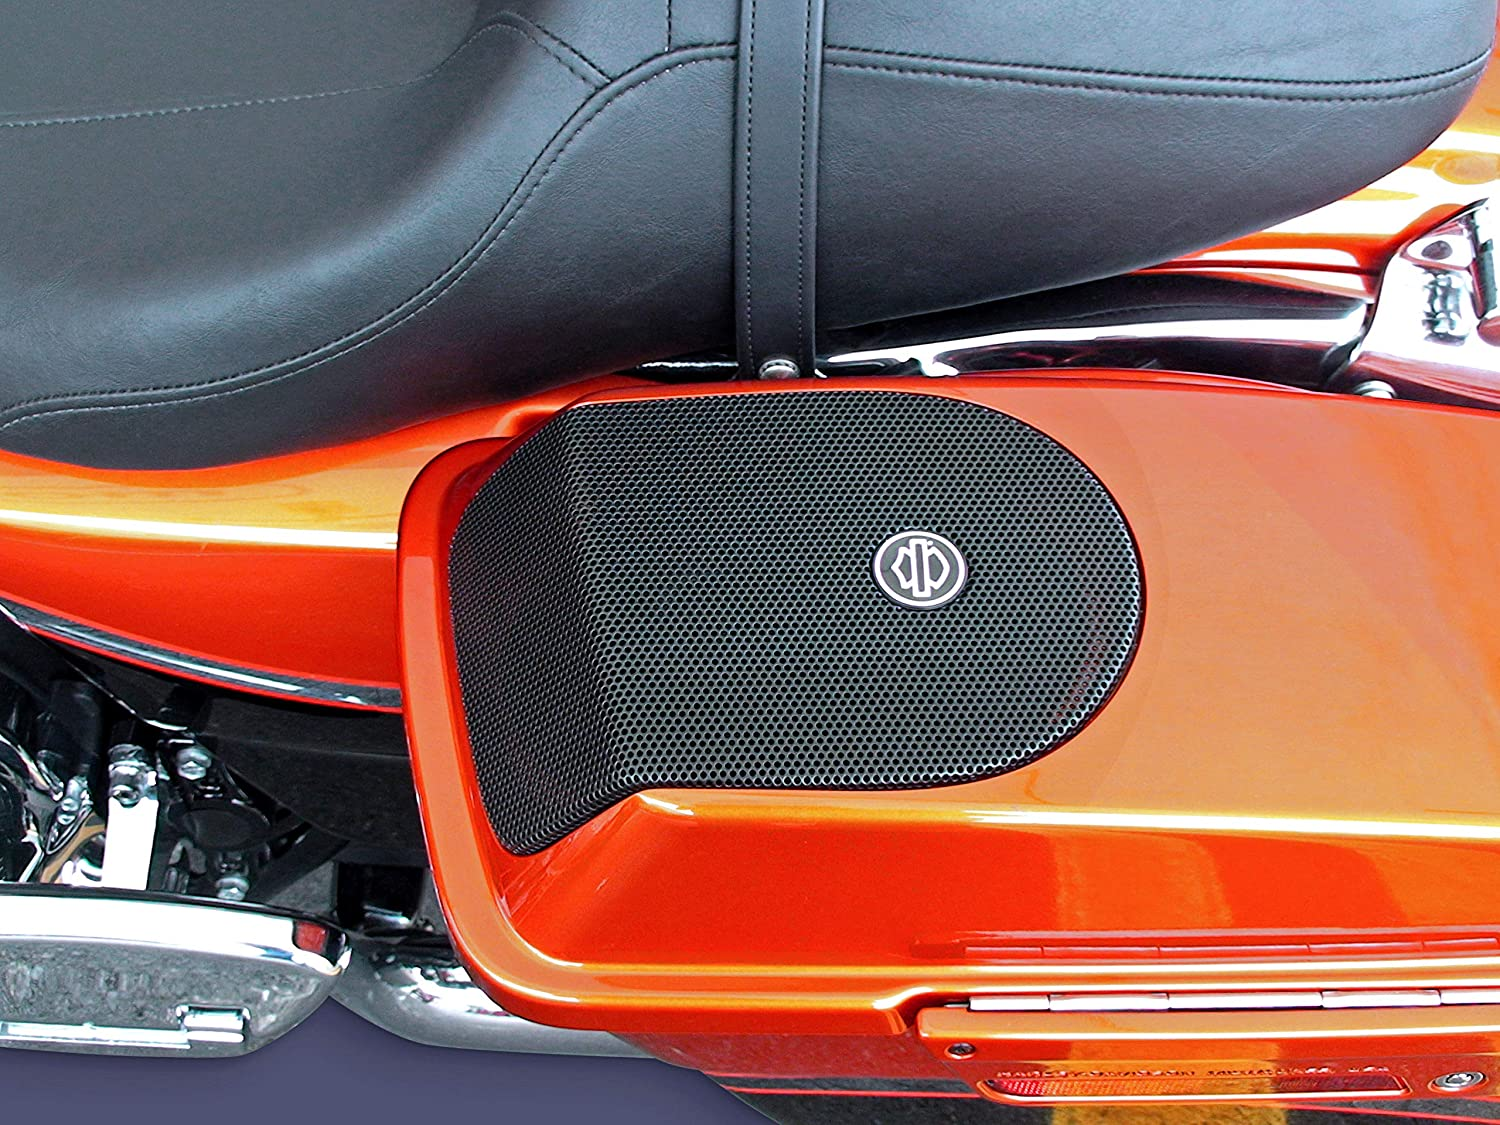 "J/&M ROKKER XXR 5X7/"" Saddlebag-Lid Speaker Upgrade Kit w//High-Output Tweeter for 2006-2019 Harley Baggers #HDRK-5X7TW-XXR J/&M Corporation"